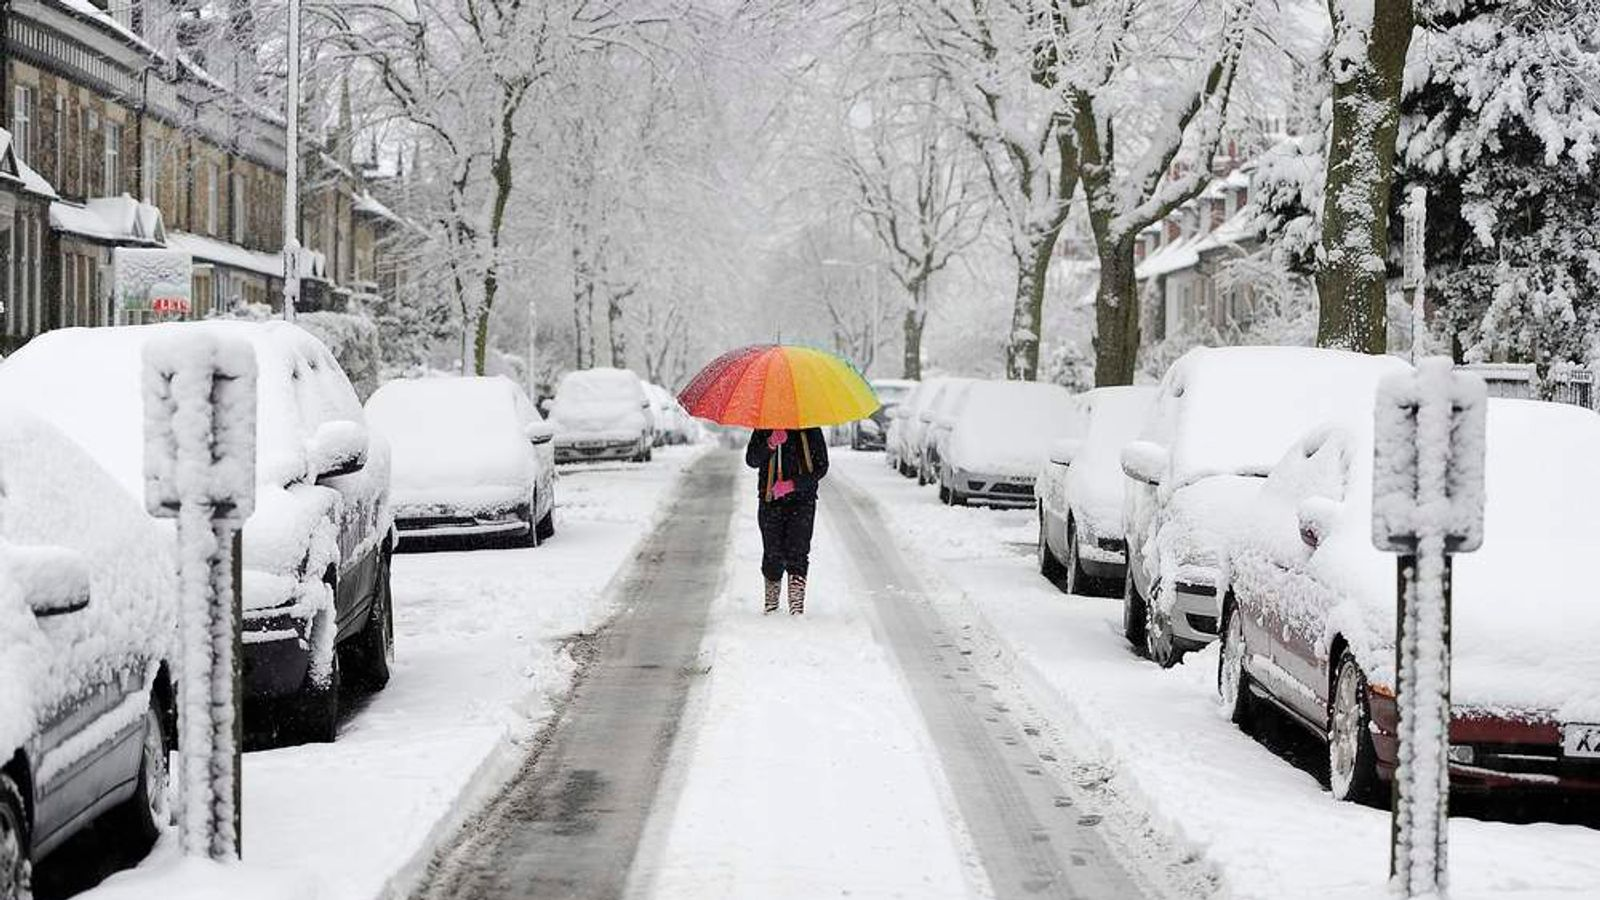 A girl walks along a snow covered street in Knaresborough